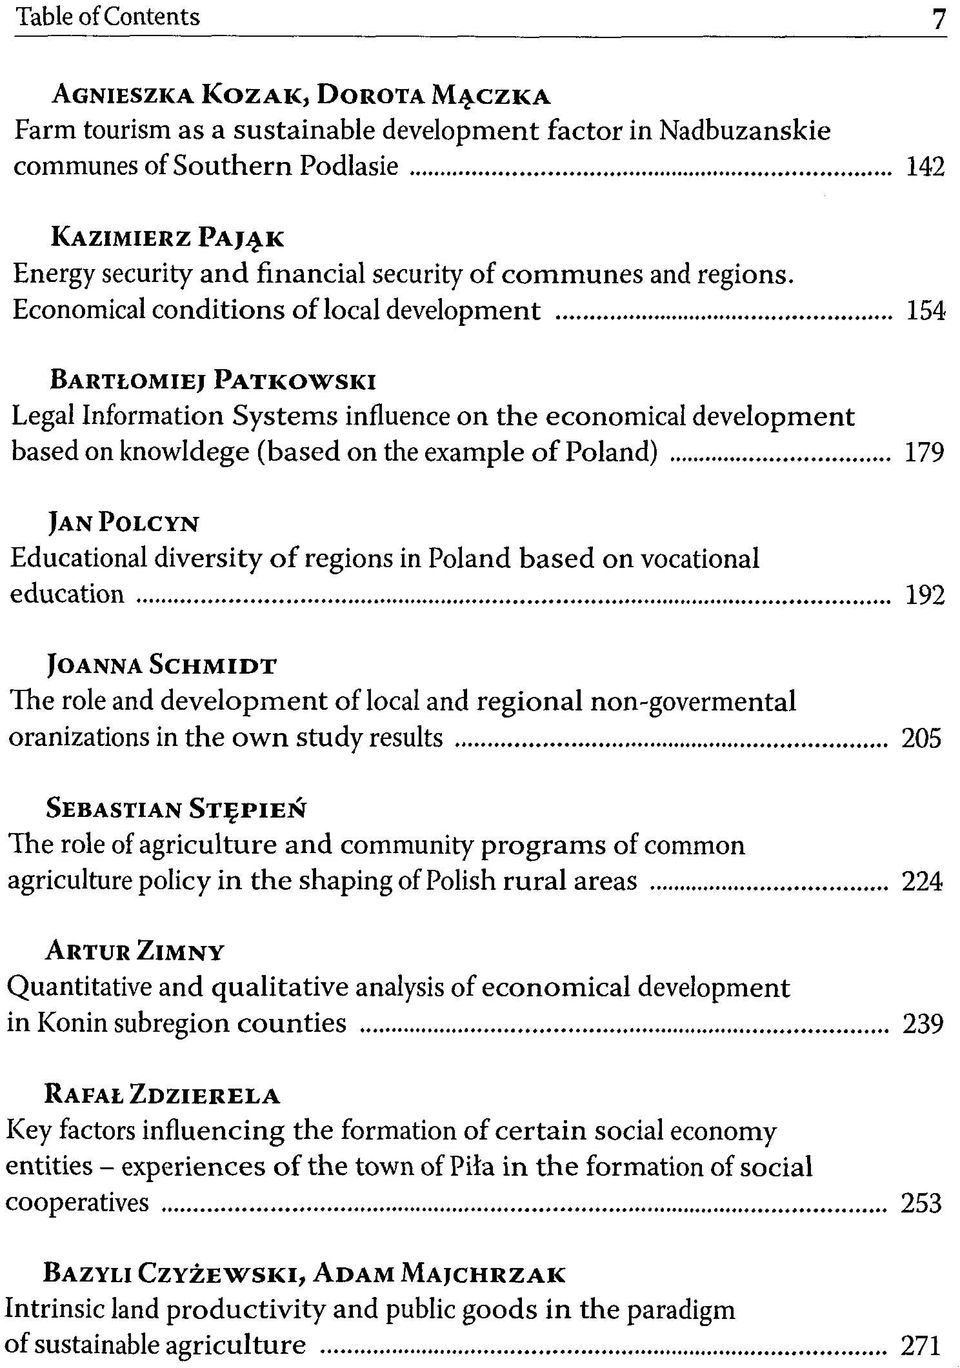 Economical conditions of local development 154 BARTLOMIEJ PATKOWSKI Legal Information Systems influence on the economical development based on knowldege (based on the example of Poland) 179 JAN